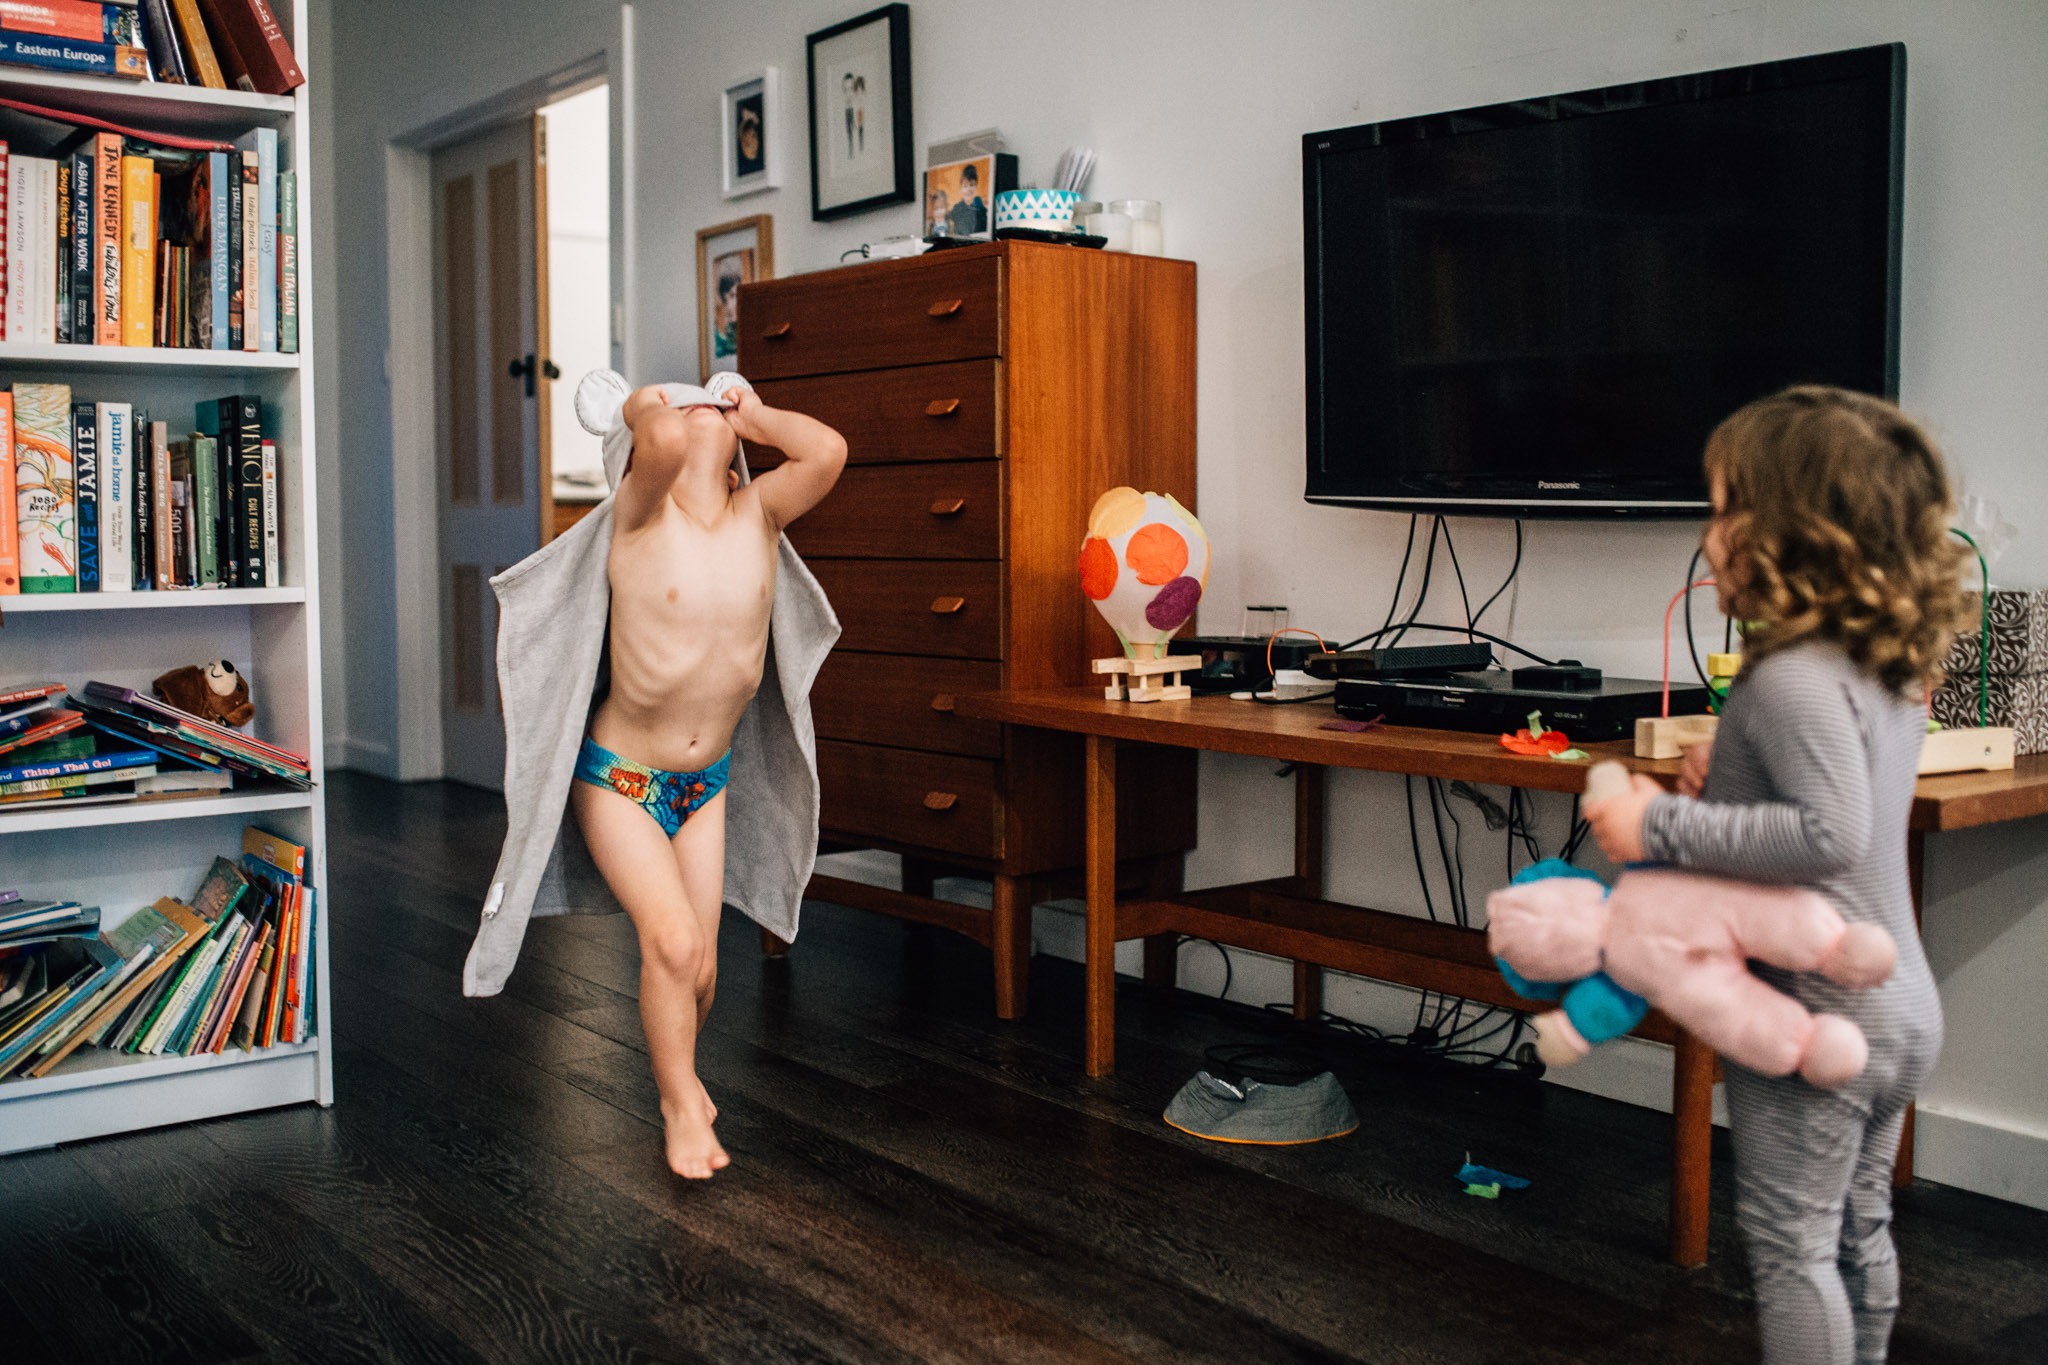 little-boy-with-towel-cape-after-bath (1 of 1).jpg